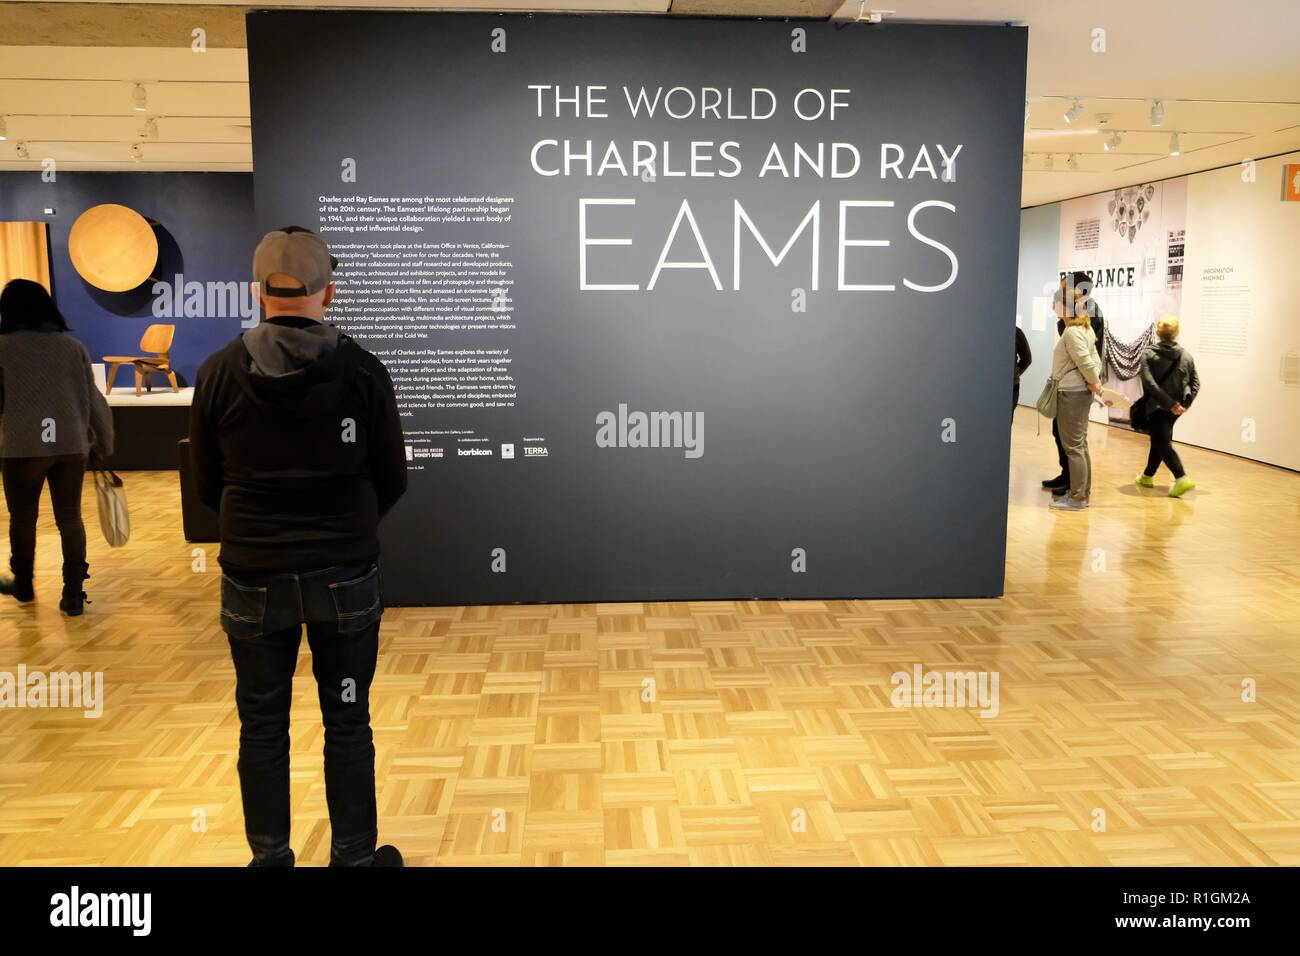 Patron reading about the The World of Charles and Ray Eames exhibit at the Oakland Museum of California (November 2018), Oakland, California, USA. Stock Photo